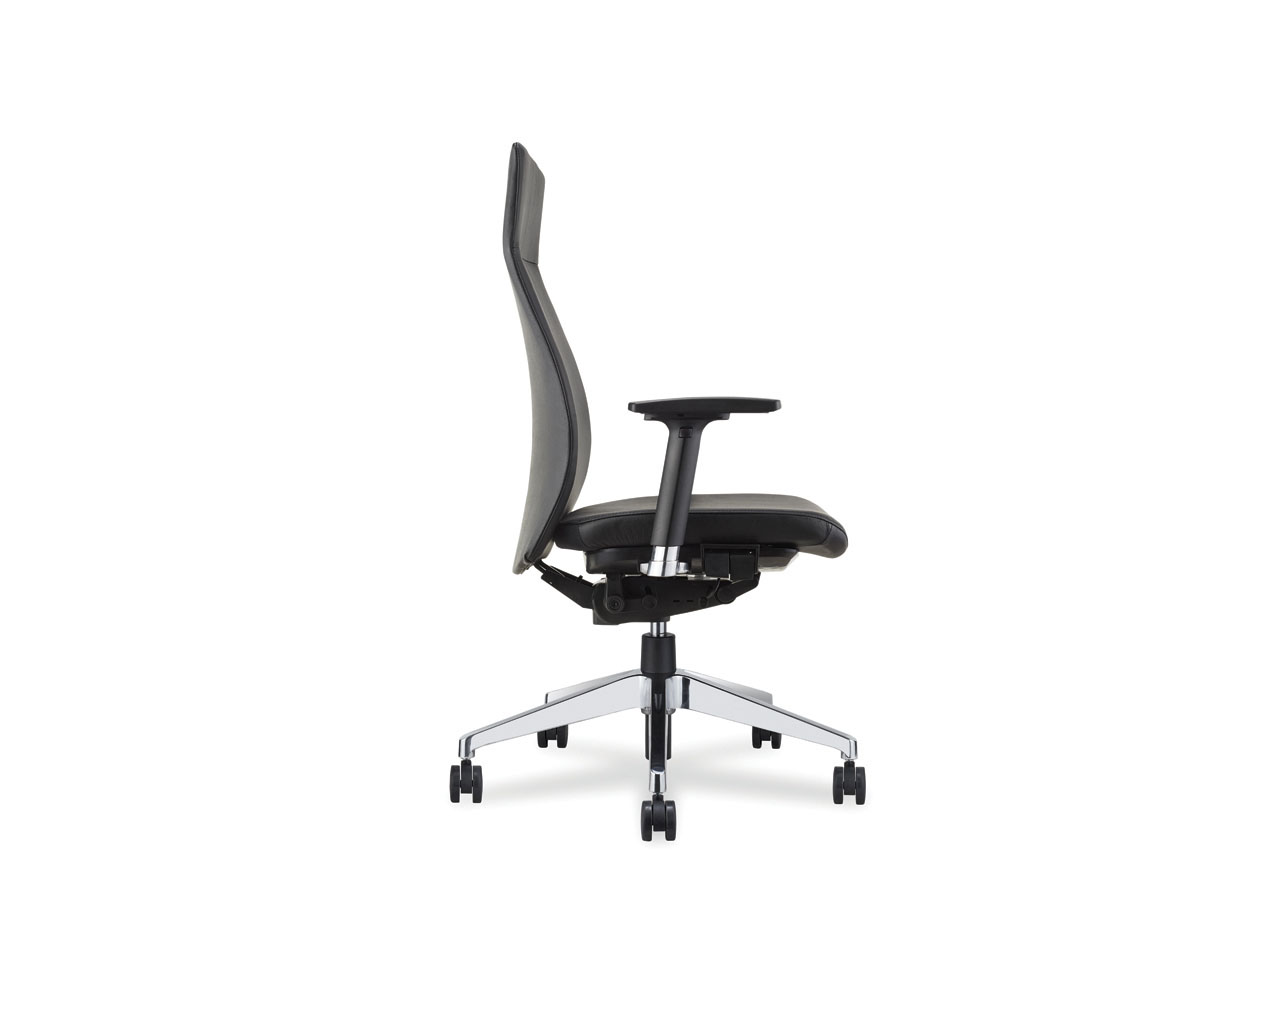 Elan Mid Back Chair Profile